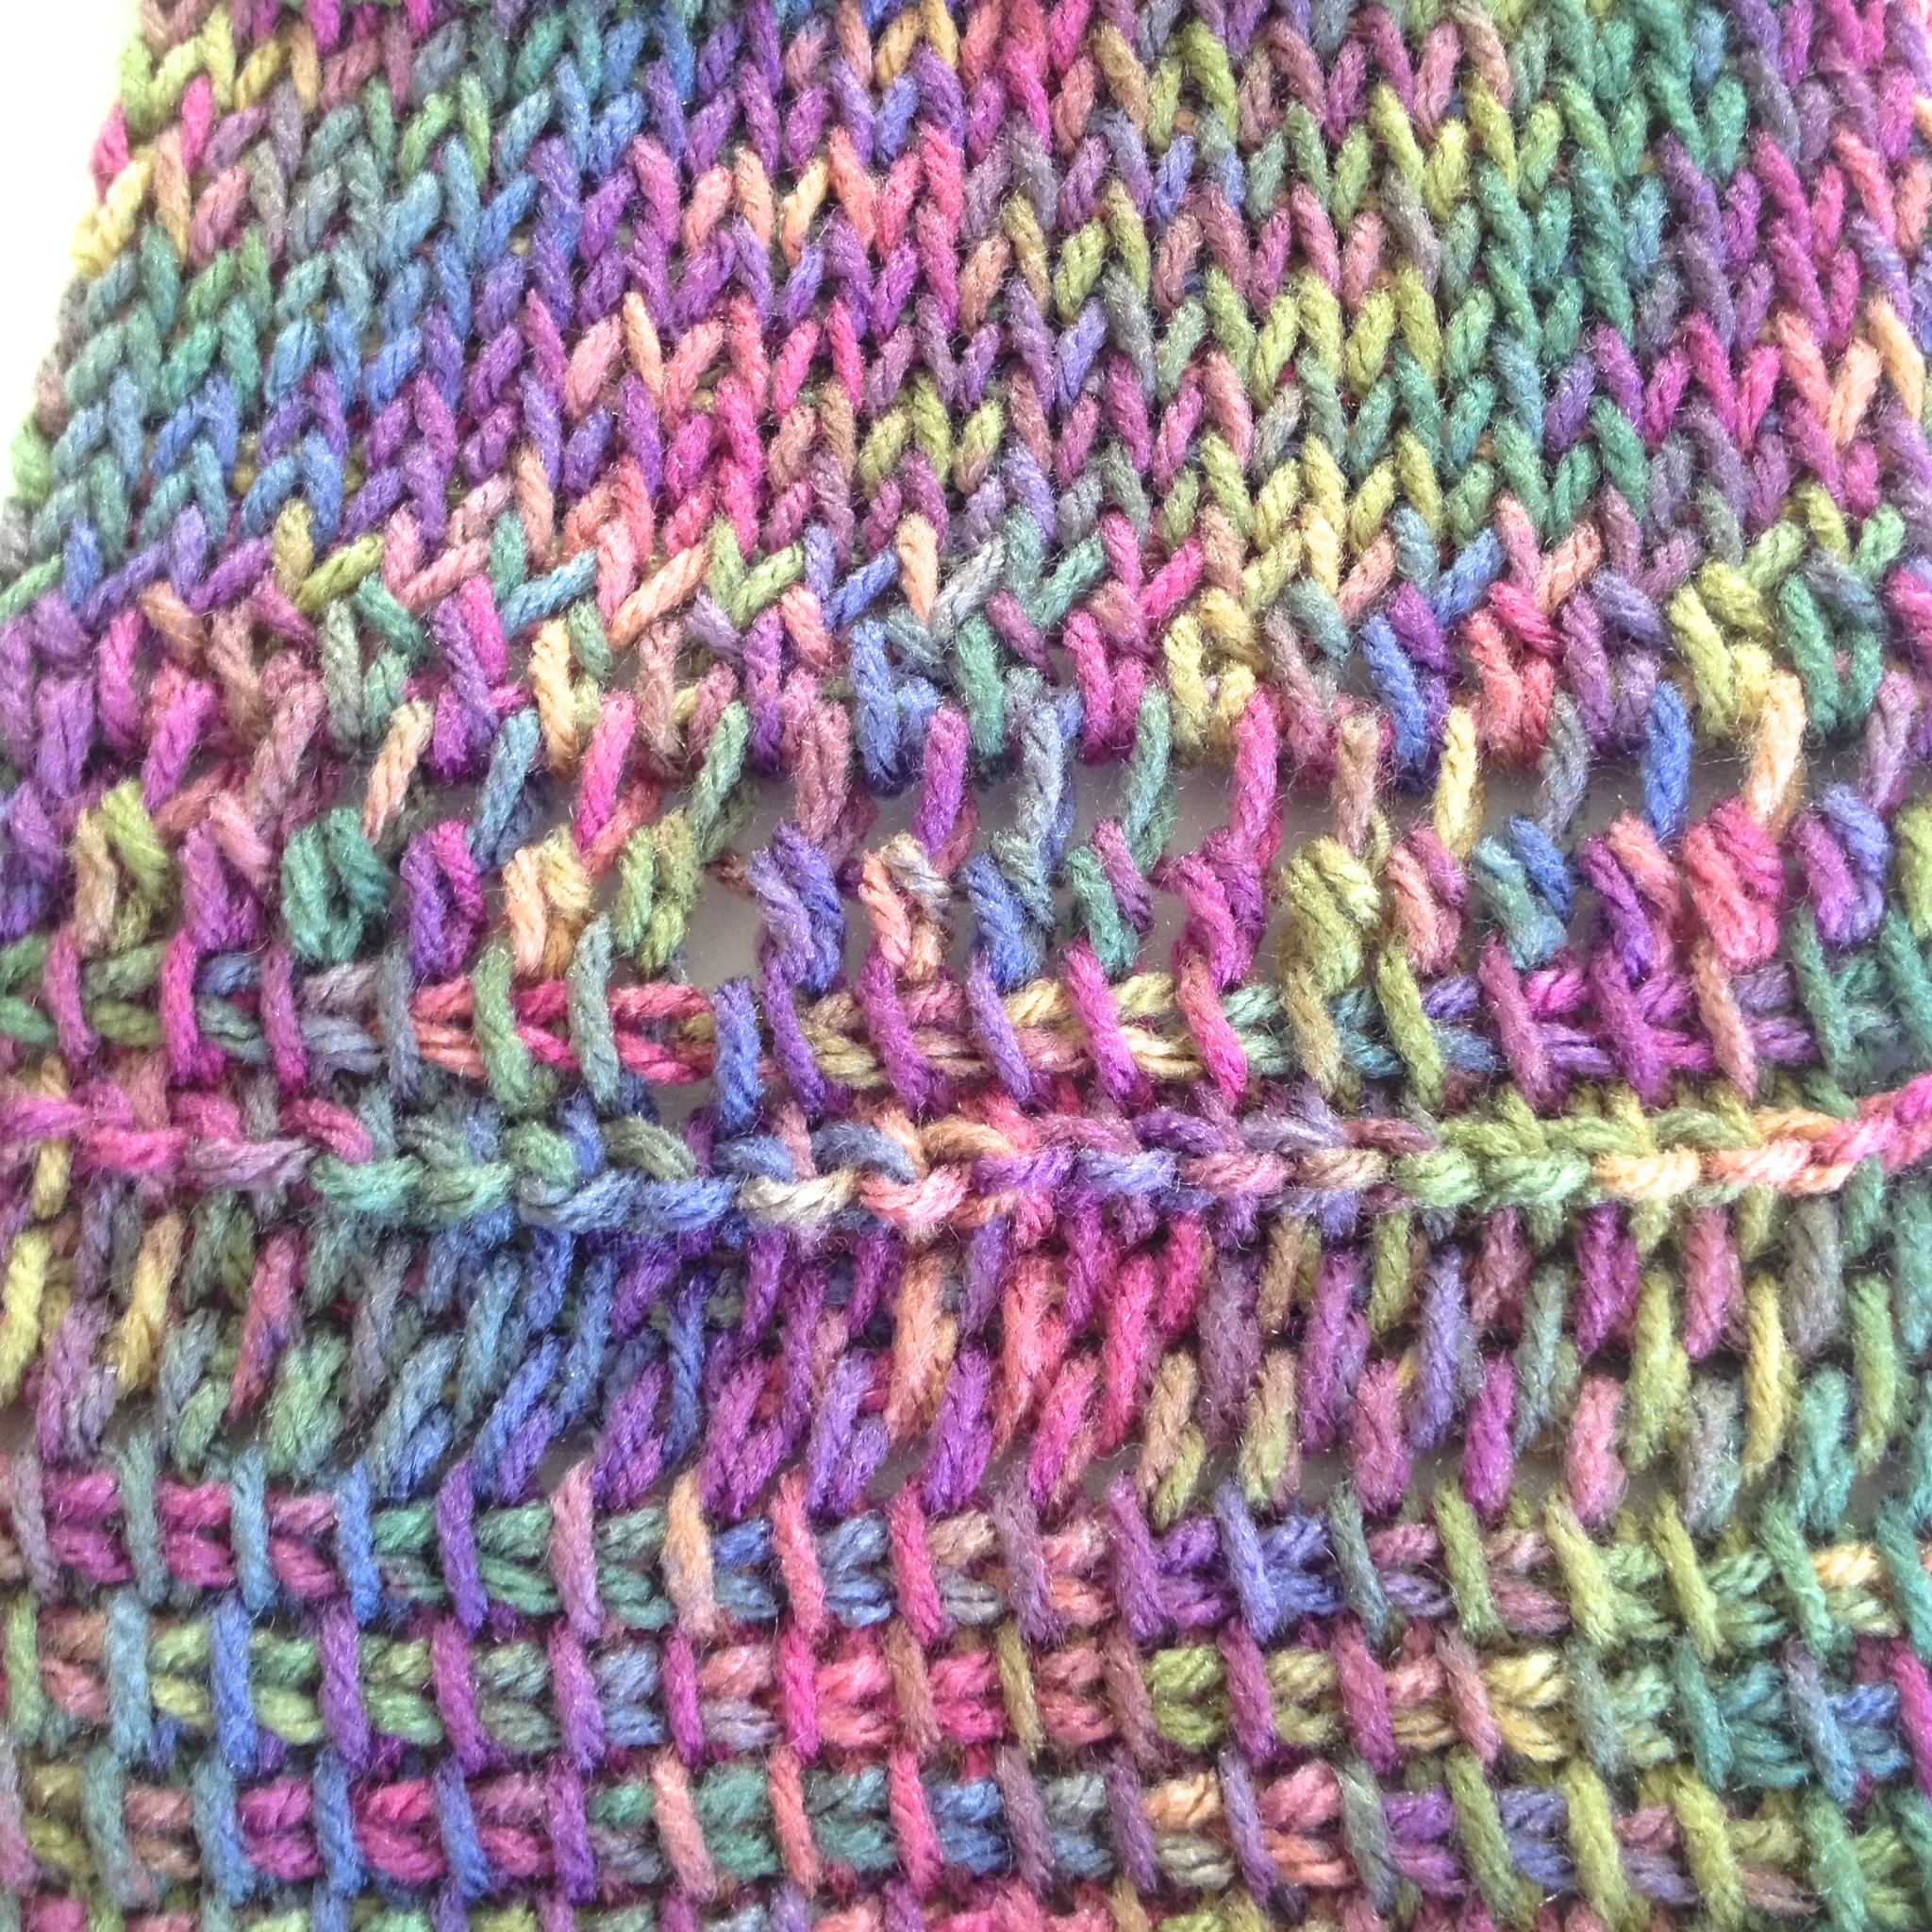 Crochet Stitches And Their Names : Study in Tunisian Crochet - Studio Deanna